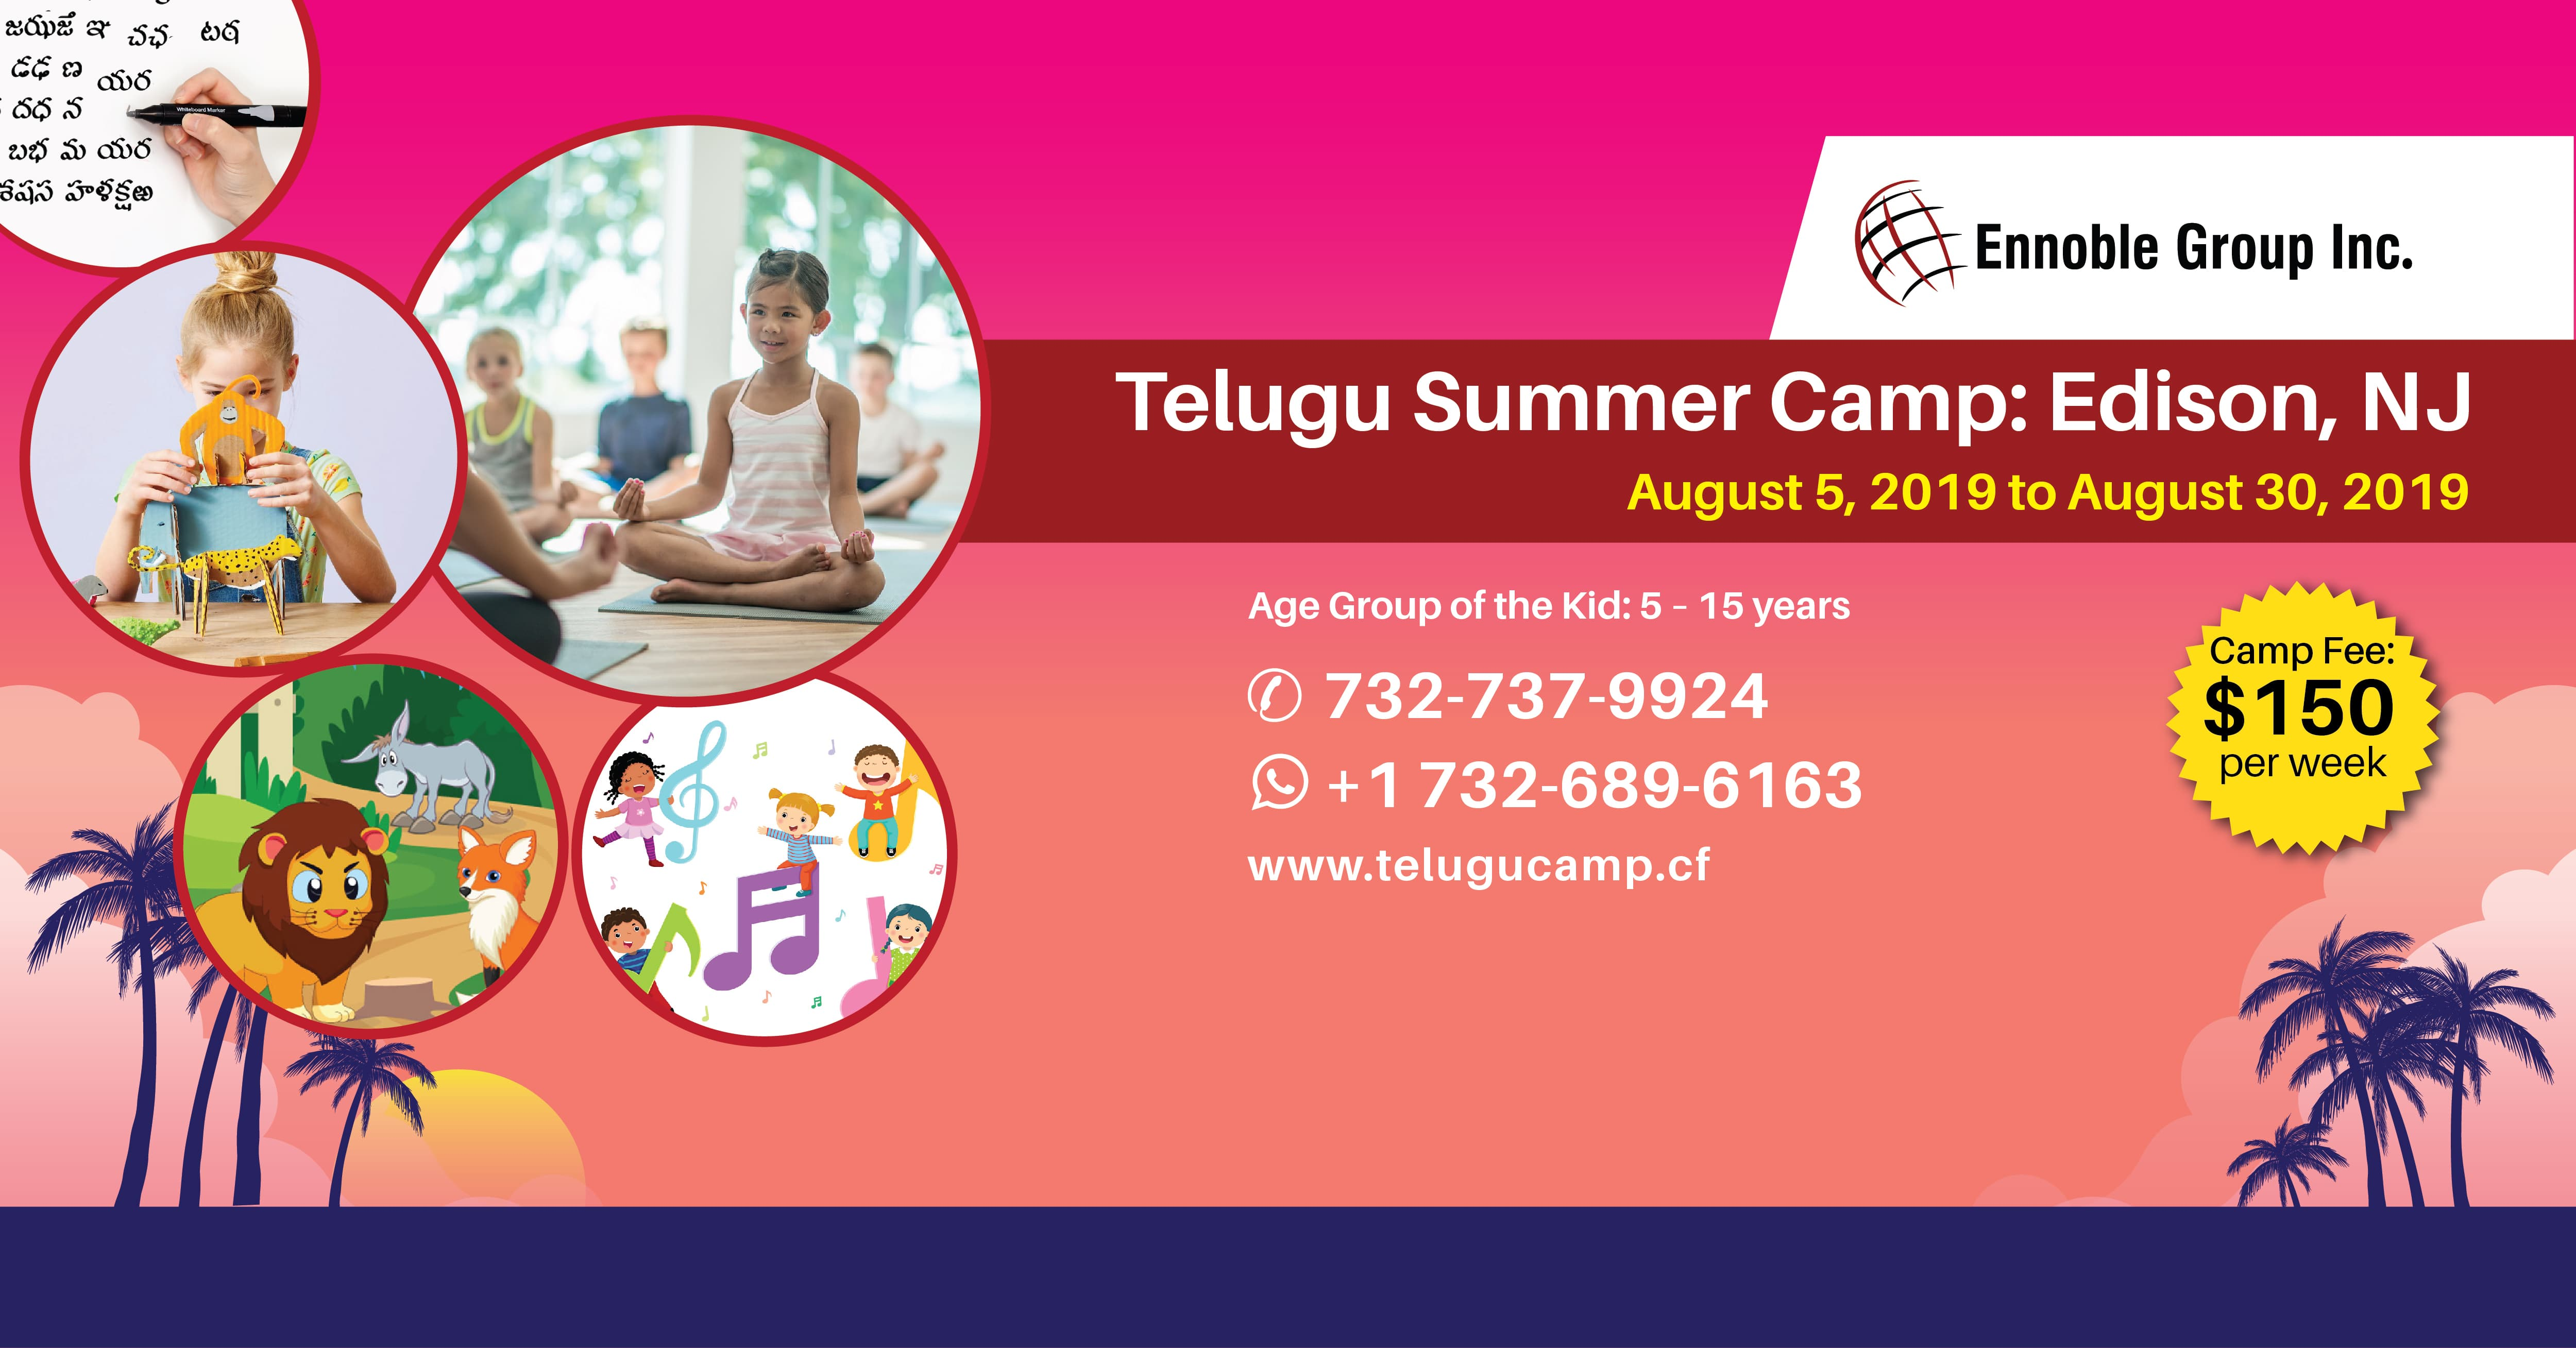 Telugu Summer Camp, Middlesex, New Jersey, United States